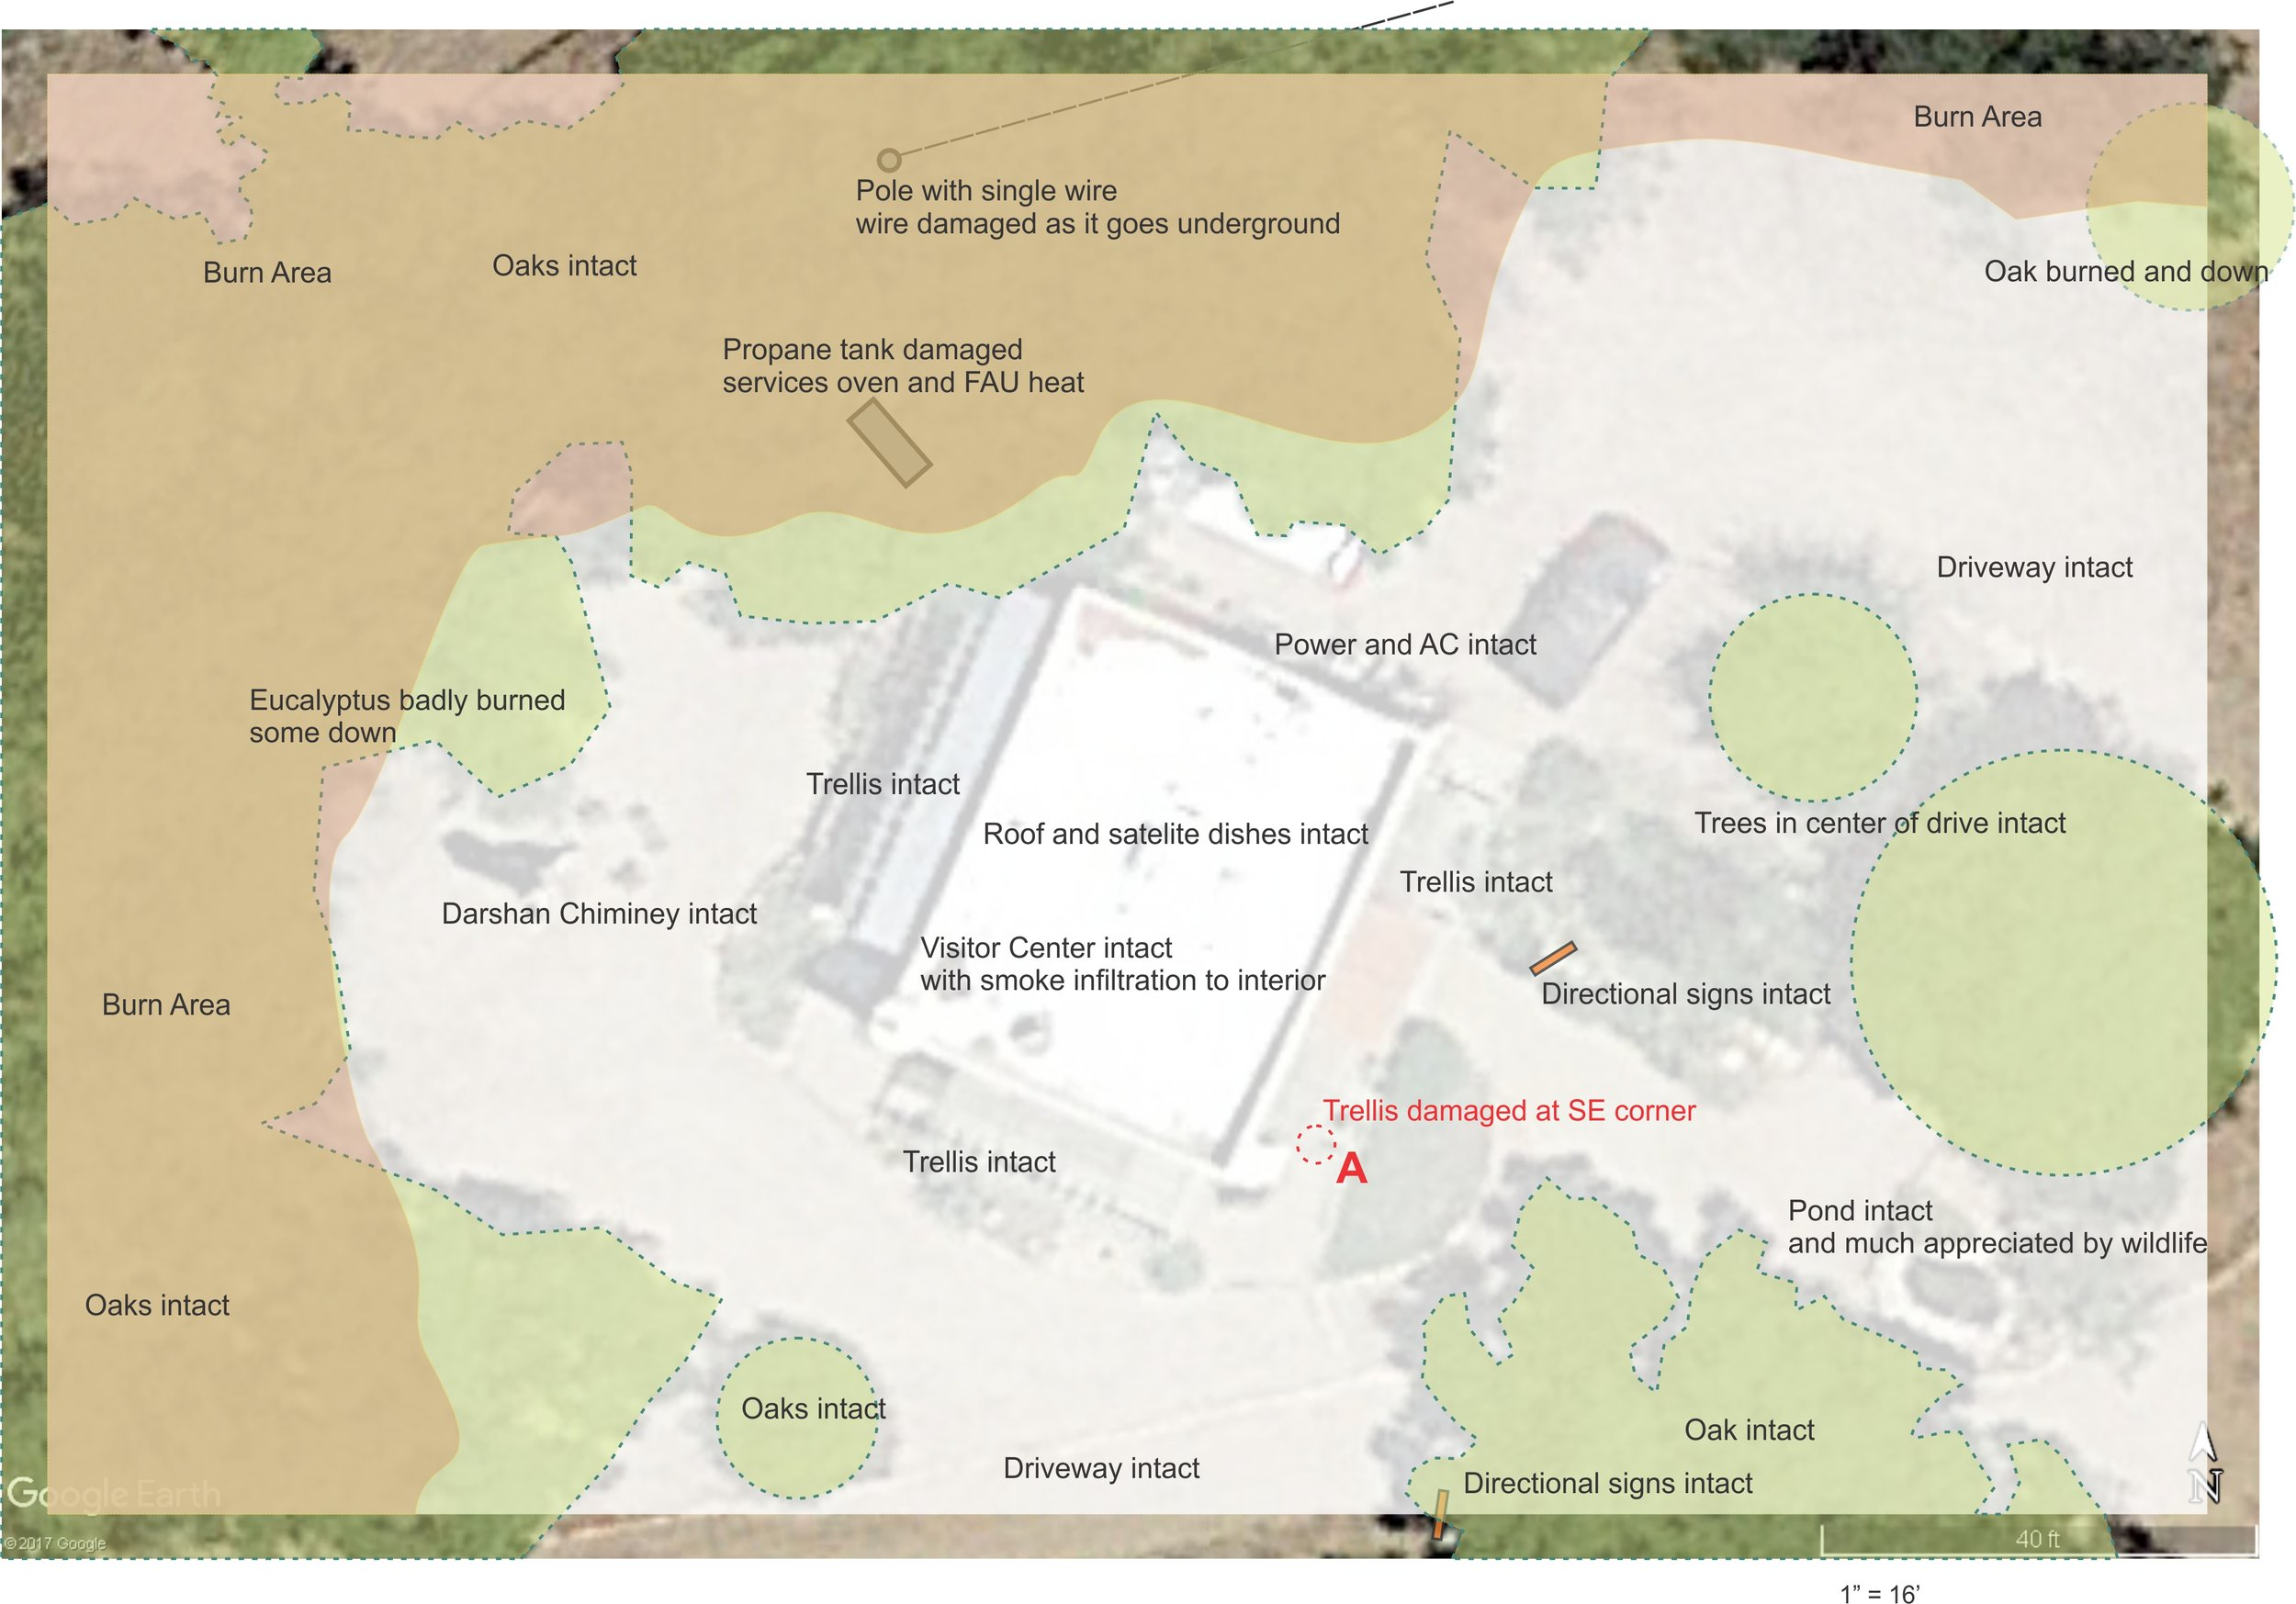 MAP OF THE VISITOR CENTER area at Meher Mount highlighting damage from the 2017 Thomas Fire. (Map: Byron Pinckert, December 21, 2017)